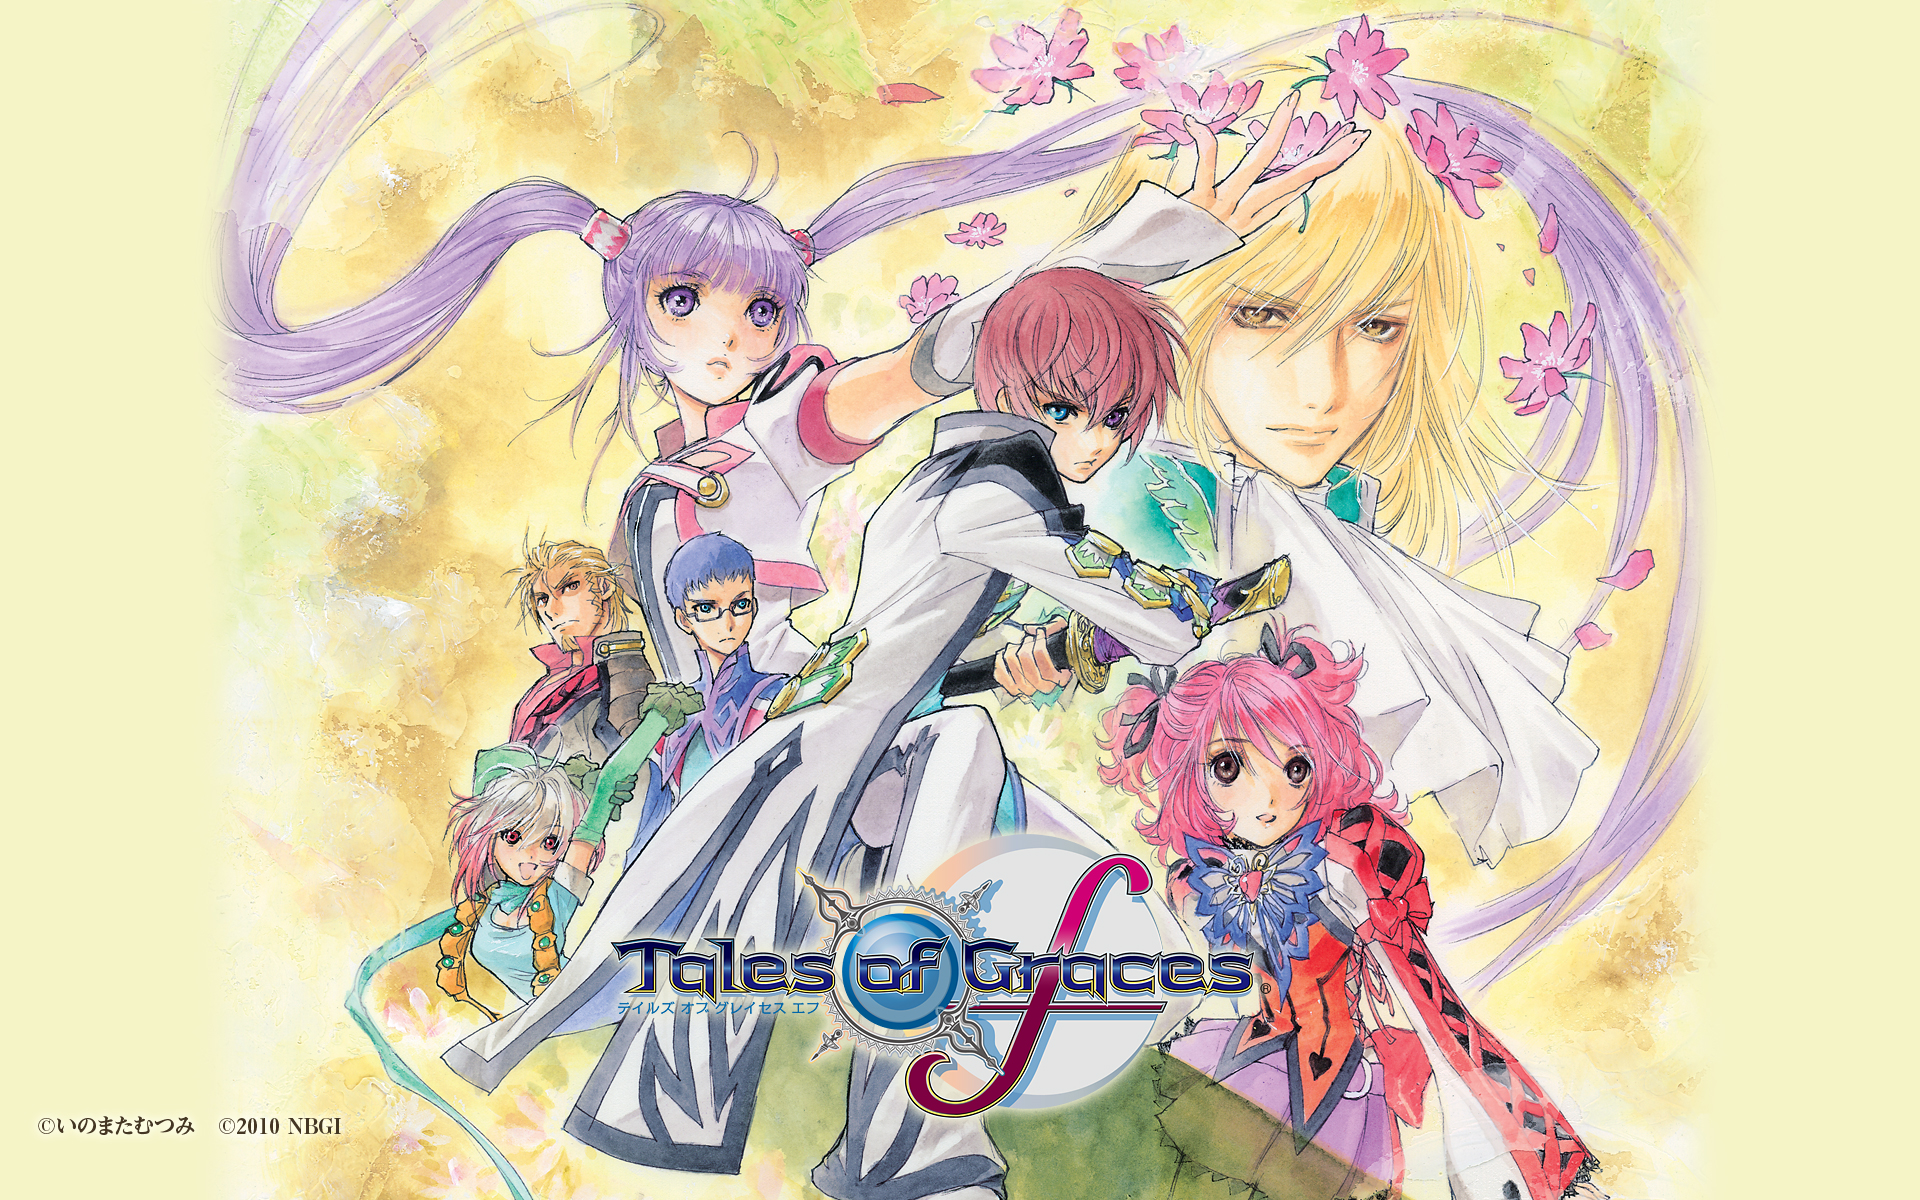 Tales of Graces – Le cru PS3 vu par CJ